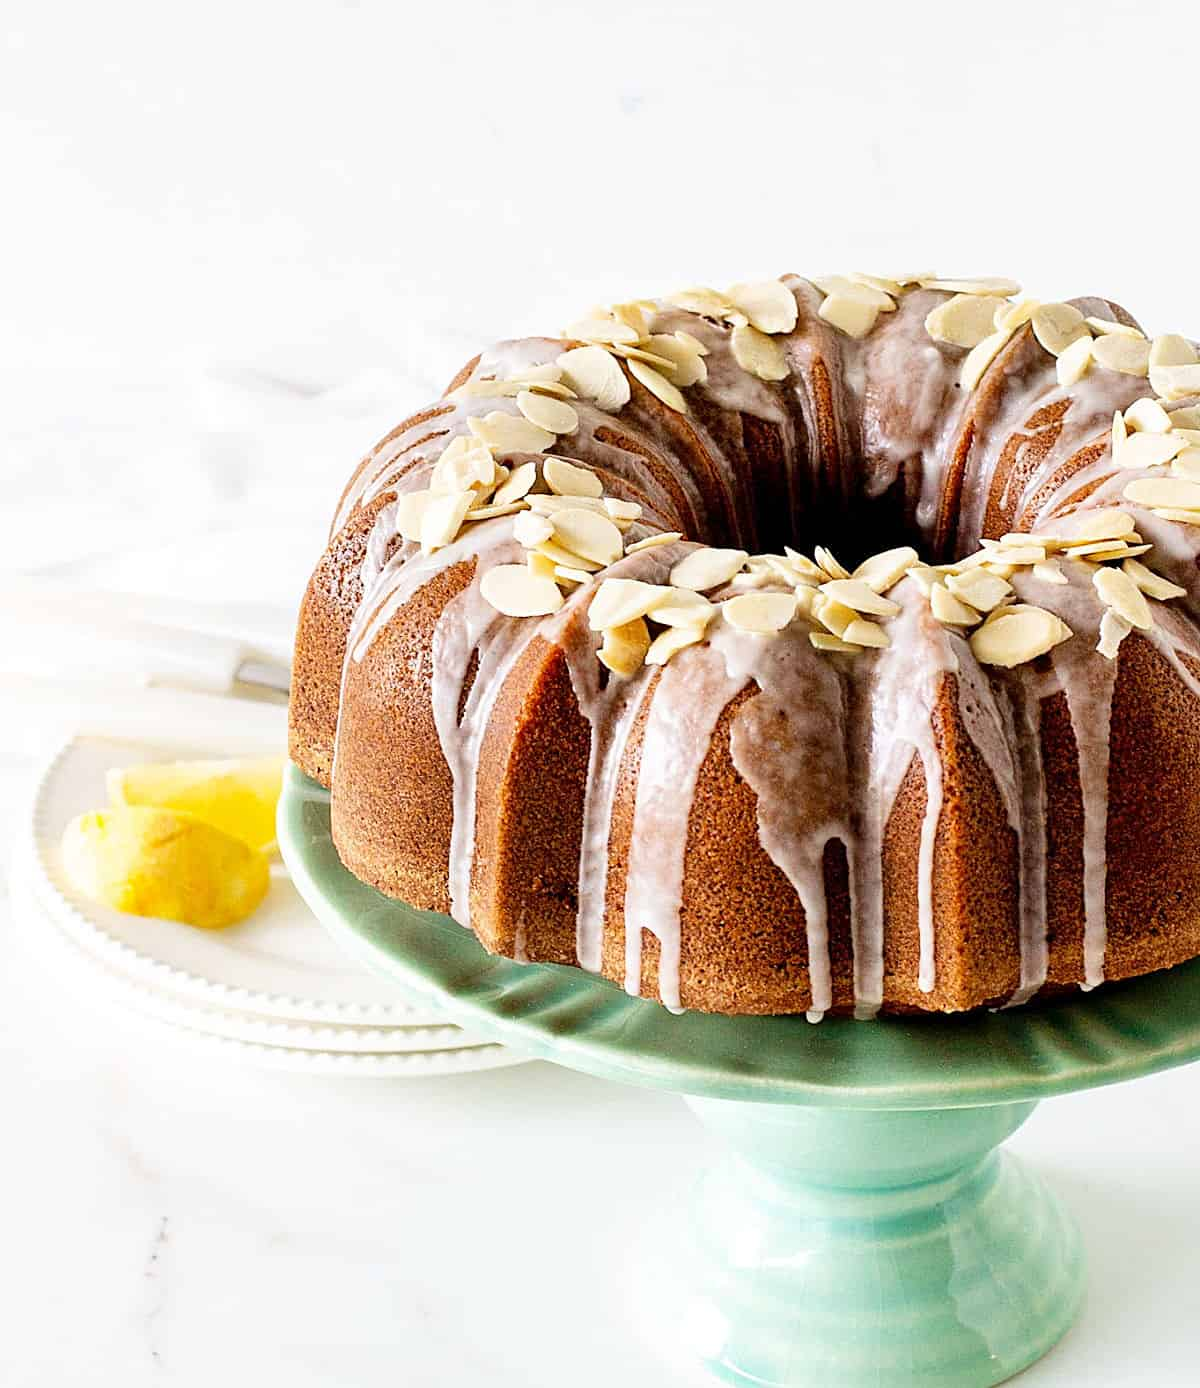 Partial view of almond topped glazed bundt cake on greenish cake stand, white background and surface, lemon wedges